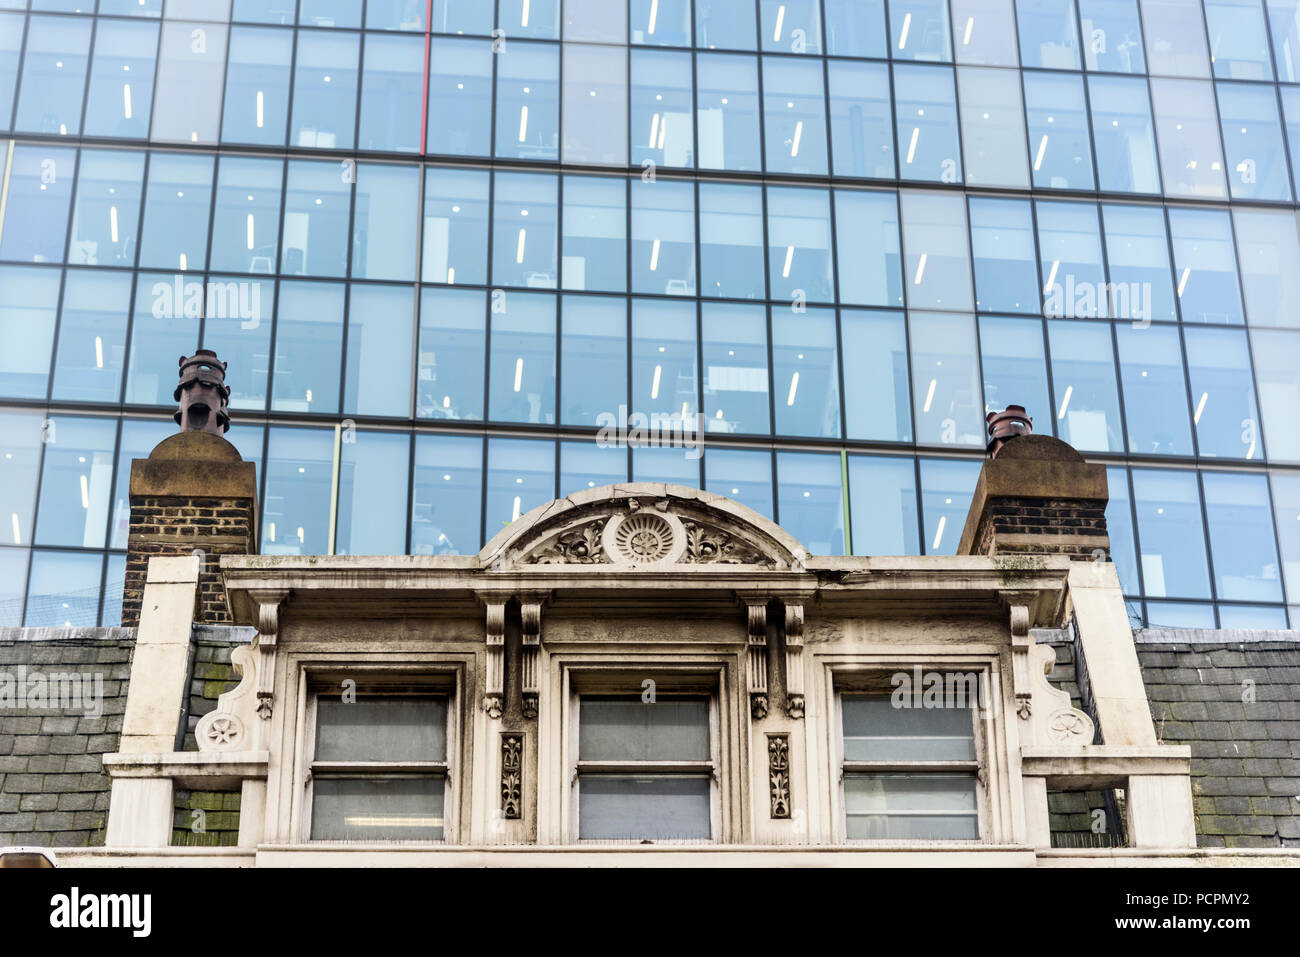 12-10-2017 London, Uk.  Contrast of old and new office buildings. Photo: © Simon Grosset - Stock Image